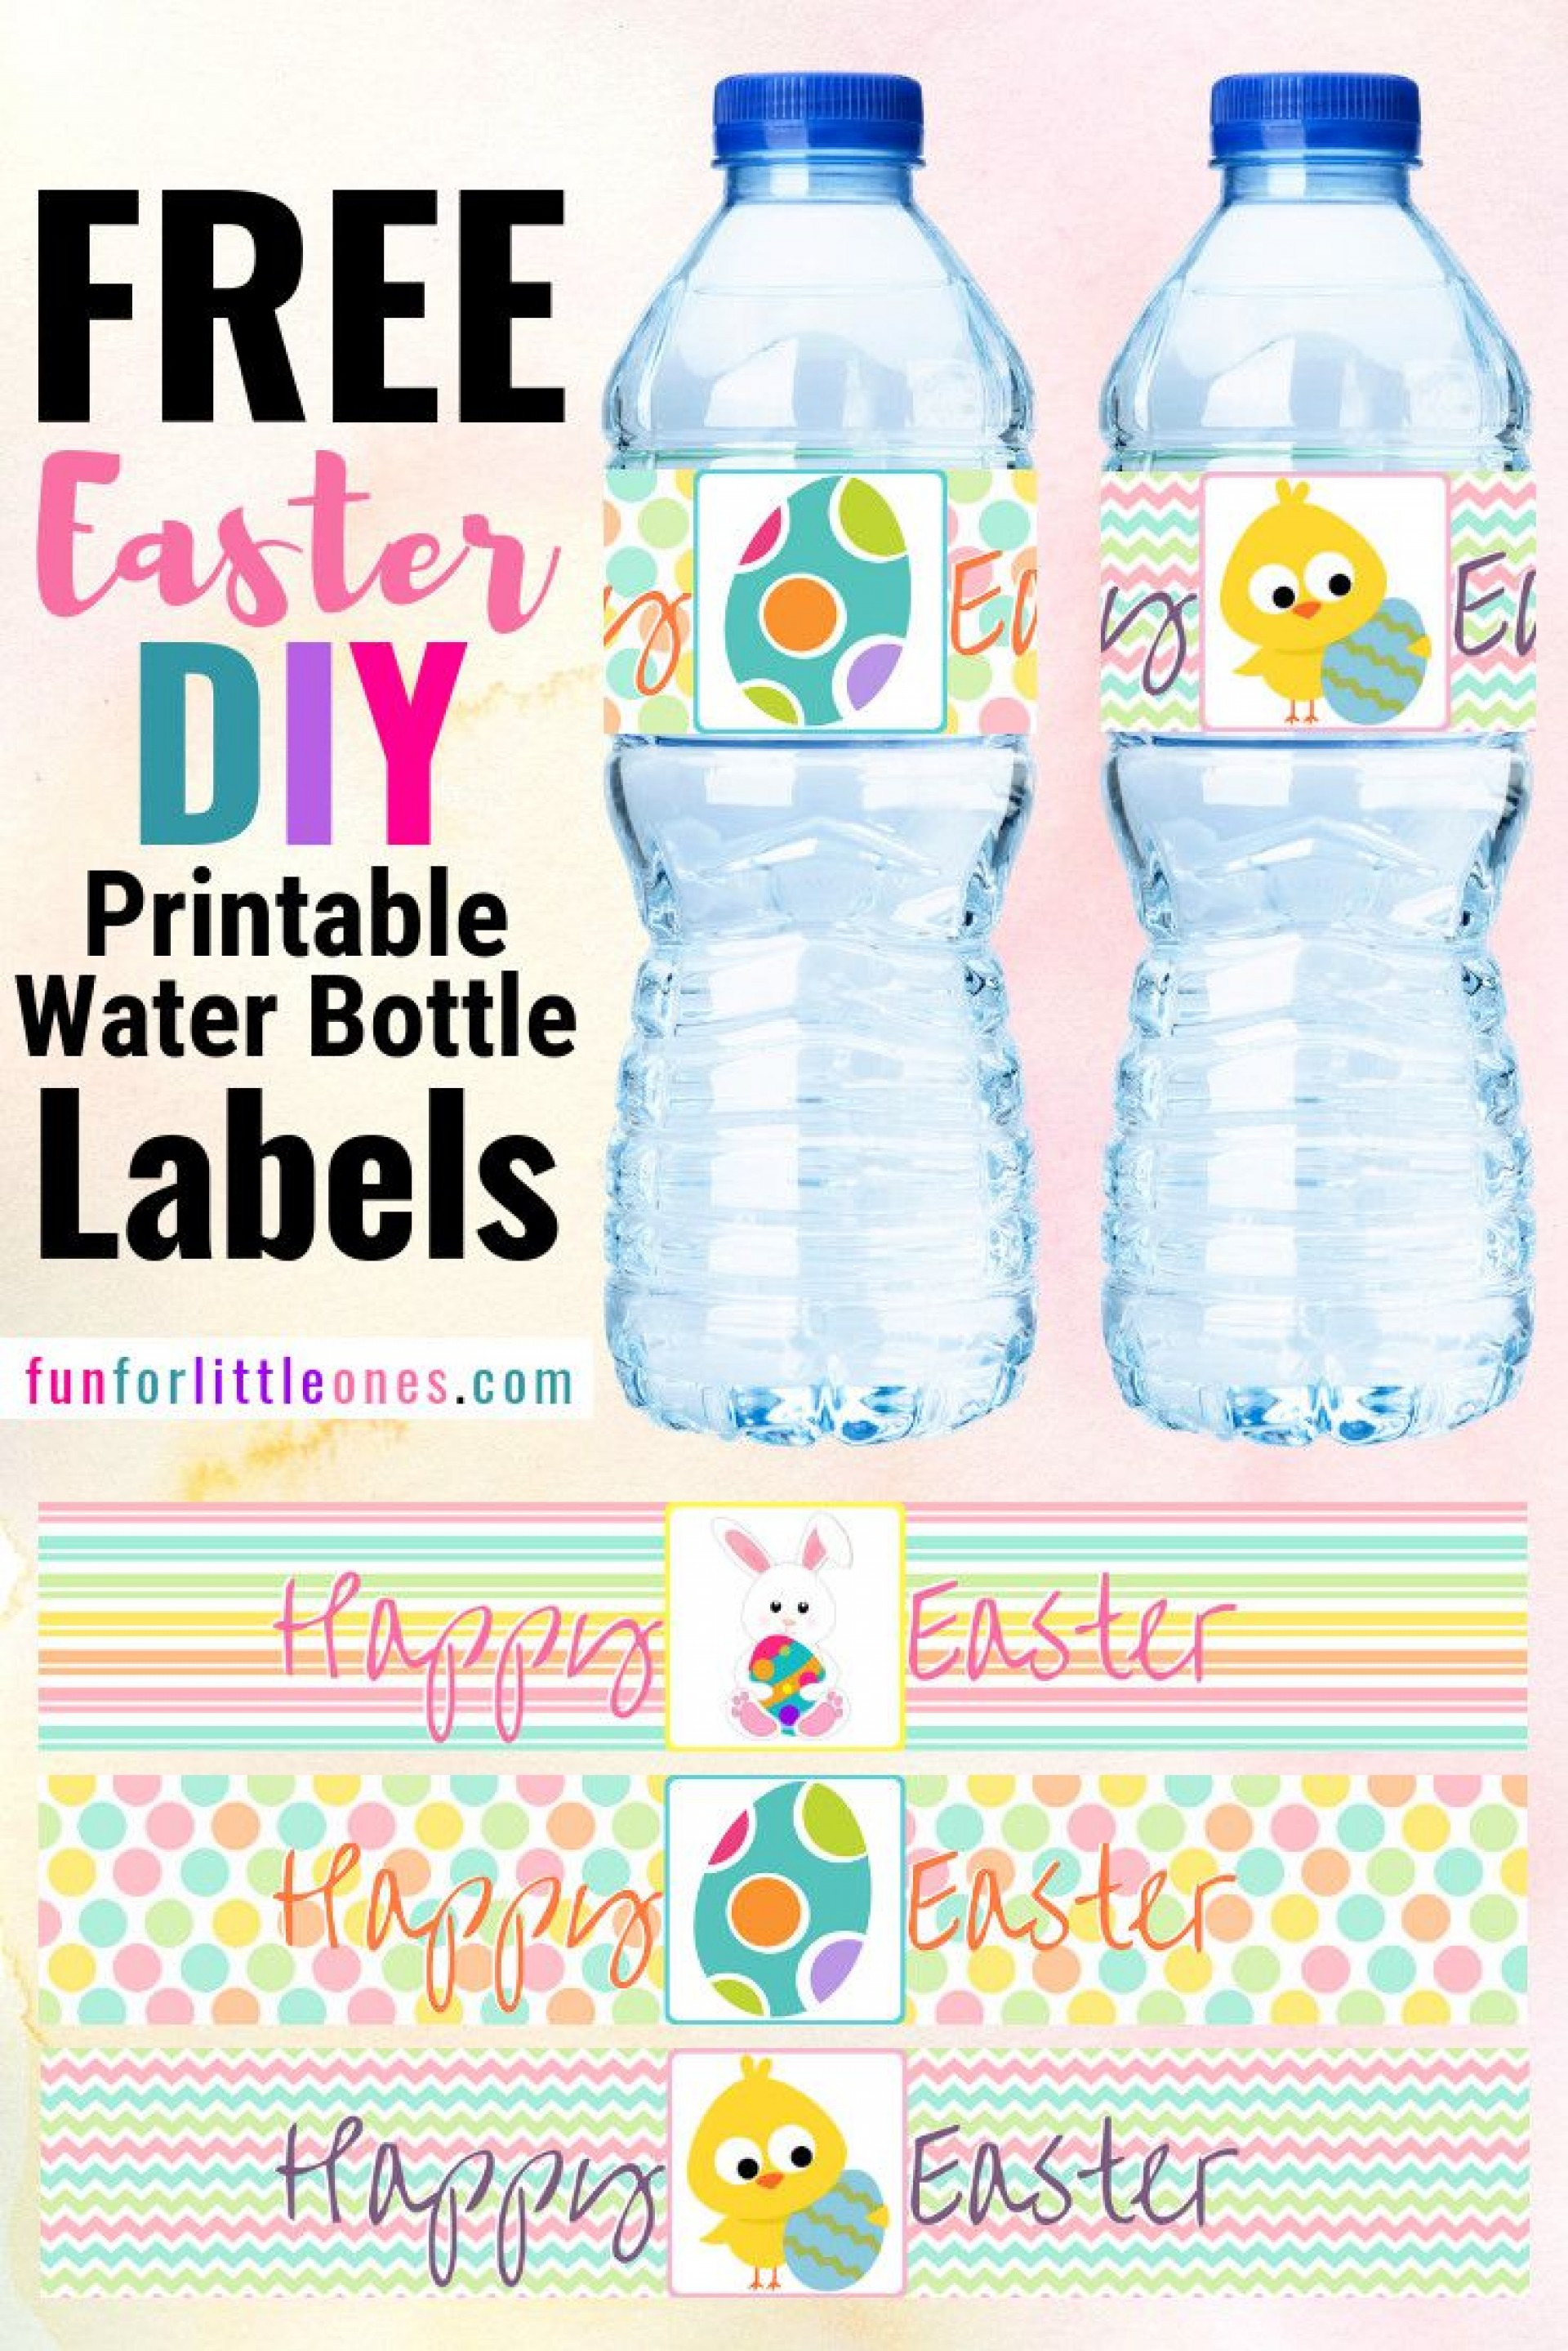 005 Awful Diy Water Bottle Label Template Free High Def 1920